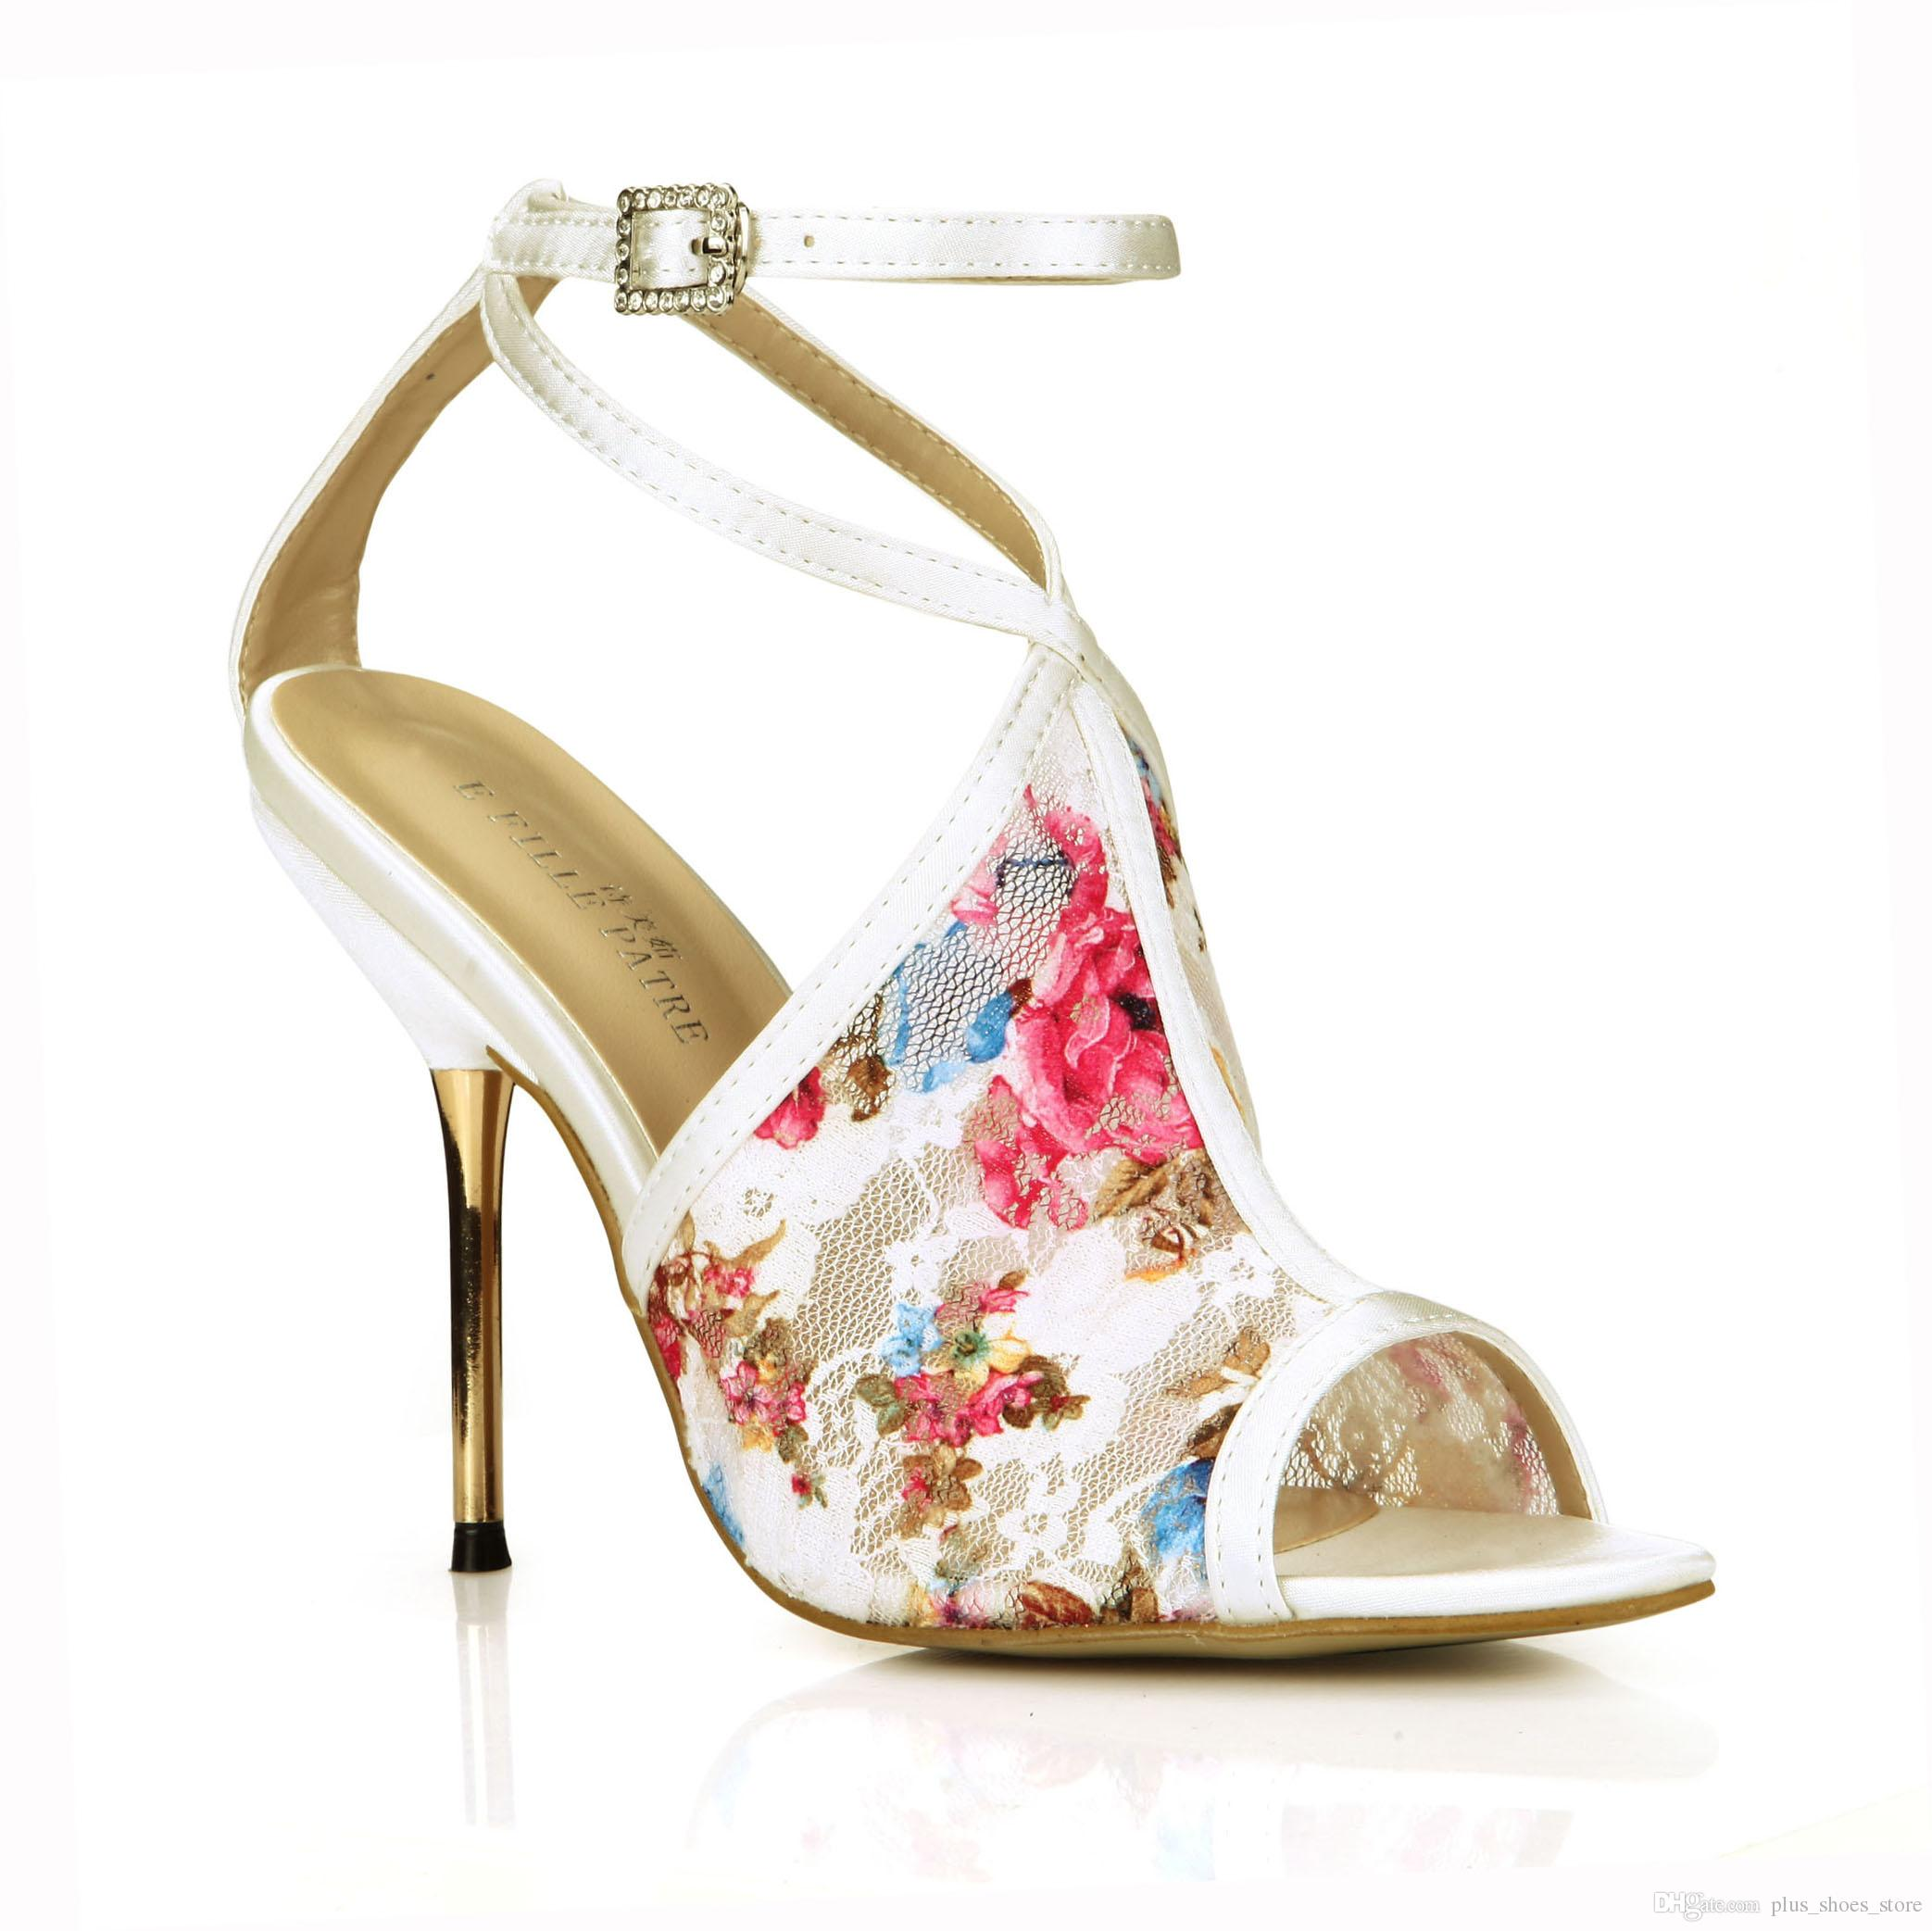 Colorful Lace Shoes Sandals Women Buckle Strap Buckle Strap Crystal Metal Heels Bridal Wedding Shoes Peep Toe Real Image Chaussures Femme